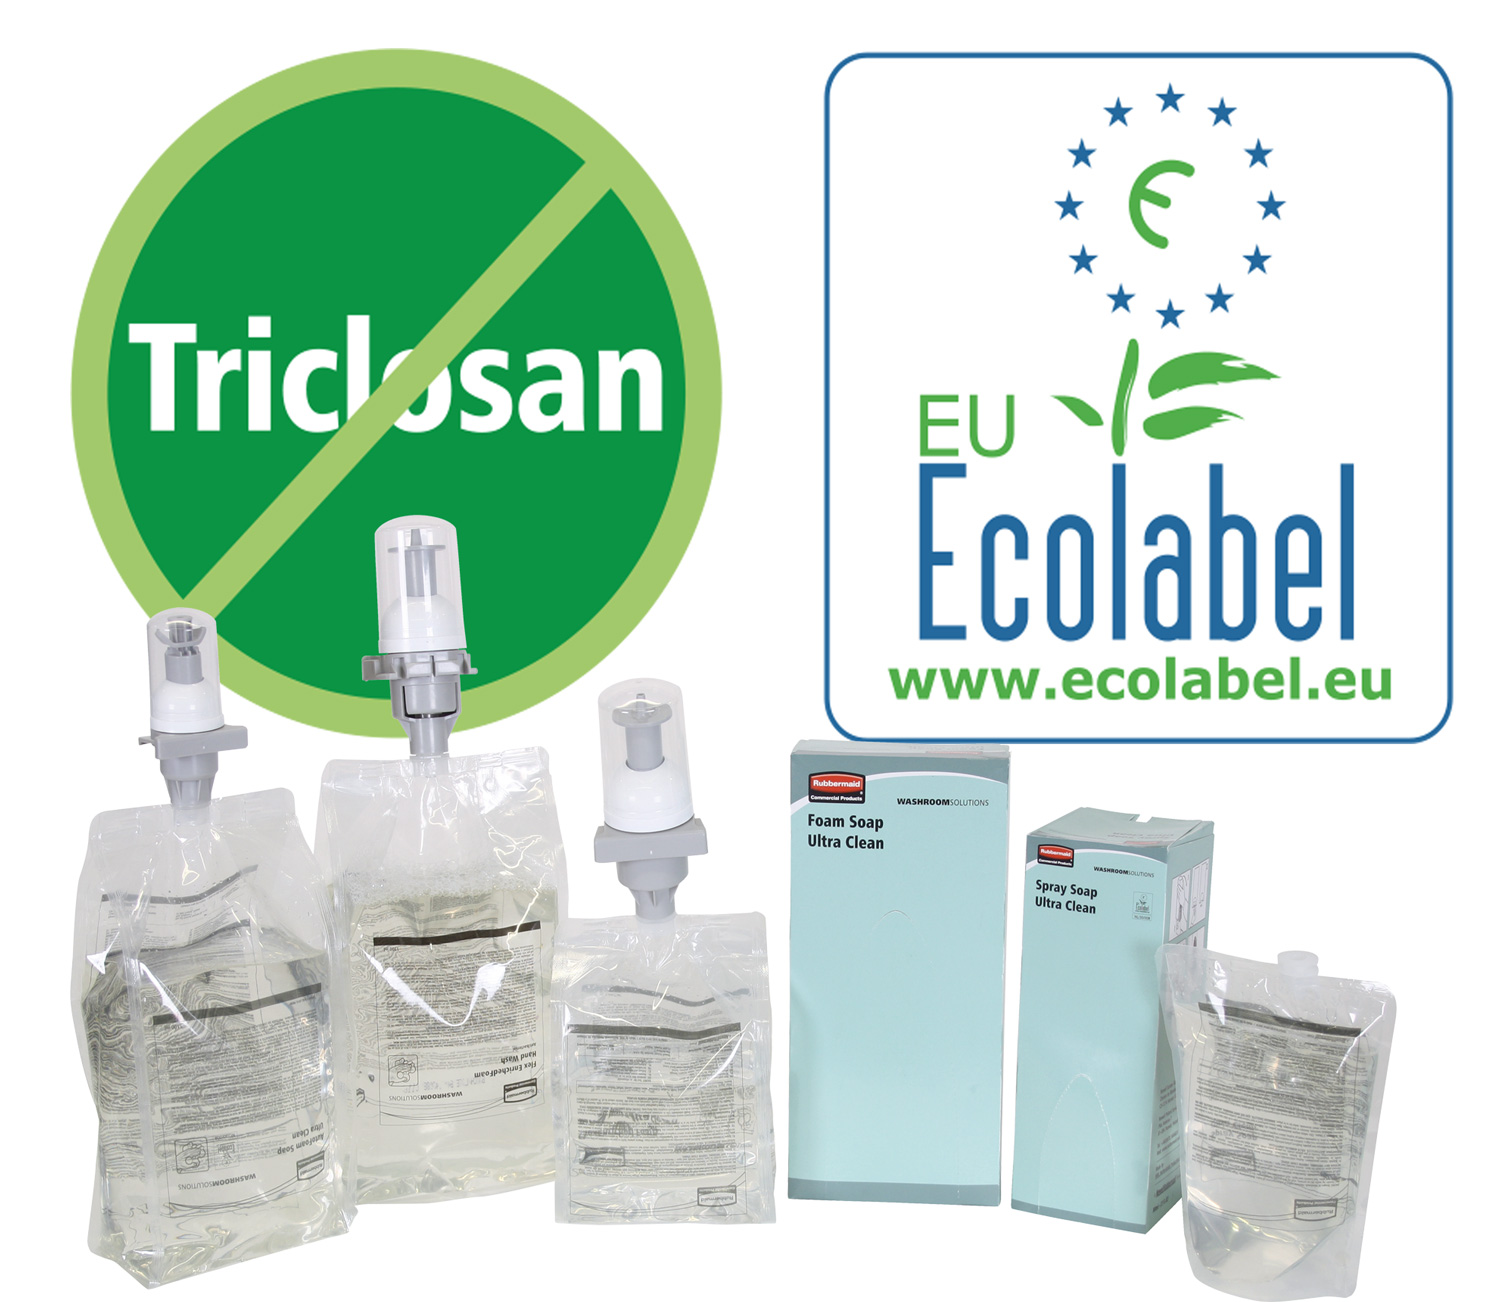 New Ultraclean Triclosan-Free Formulation